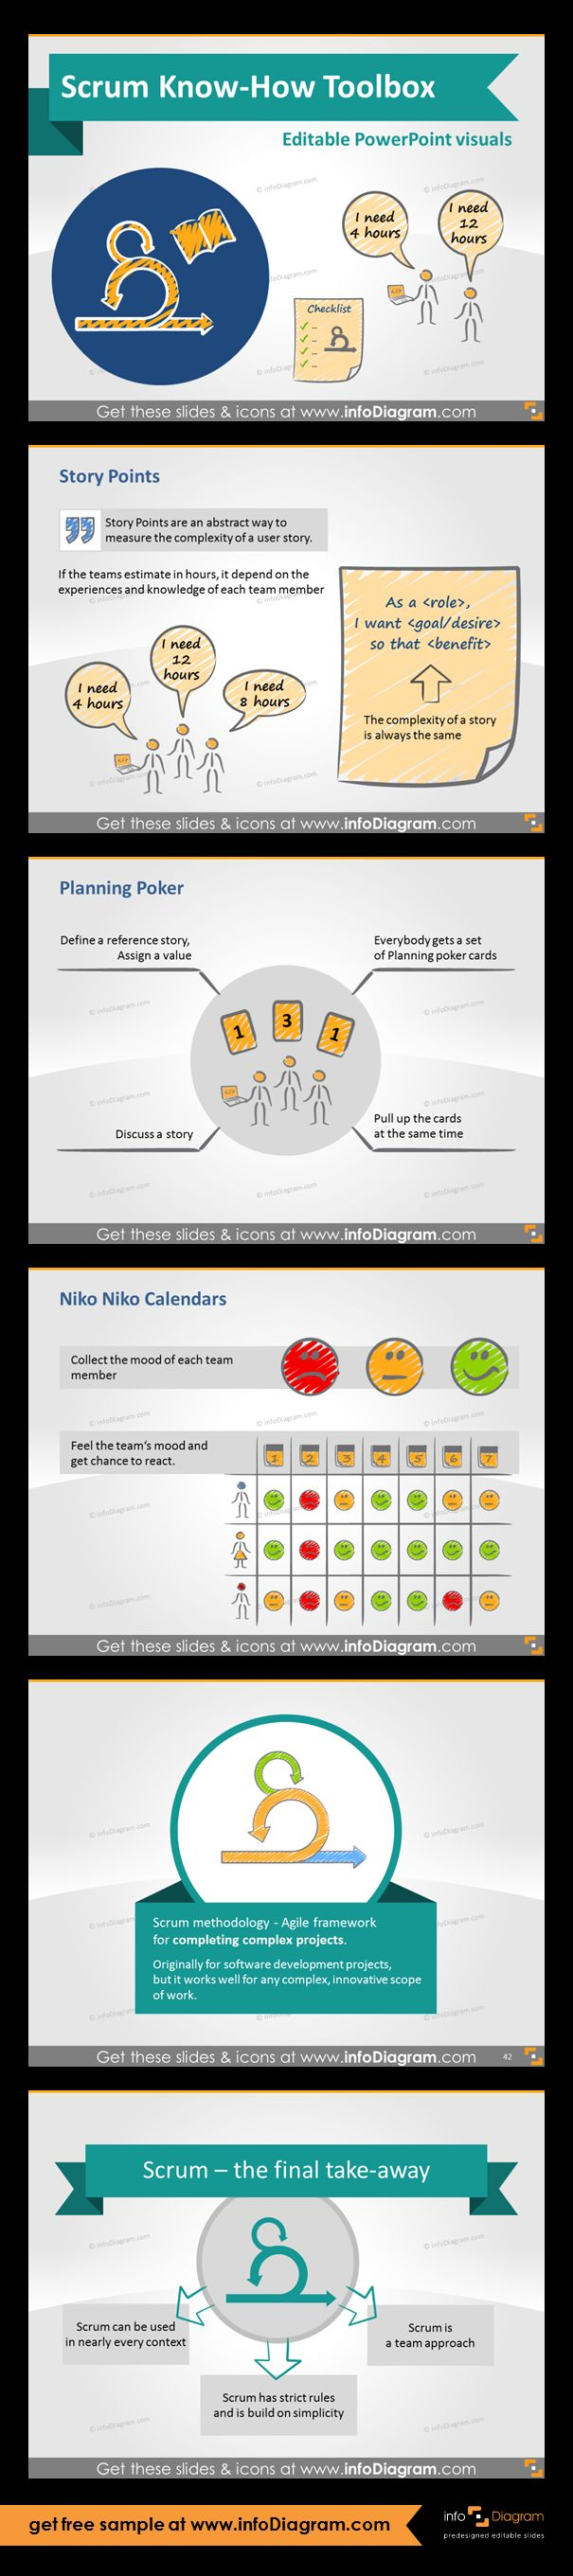 Scrum Know-How Presentation Visuals for Powerpoint. Tools and Techniques: Story Points. Planning Poker. Niko Niko Calendars, Short conclusion and quick key points. Fully editable style, text, size and colors.